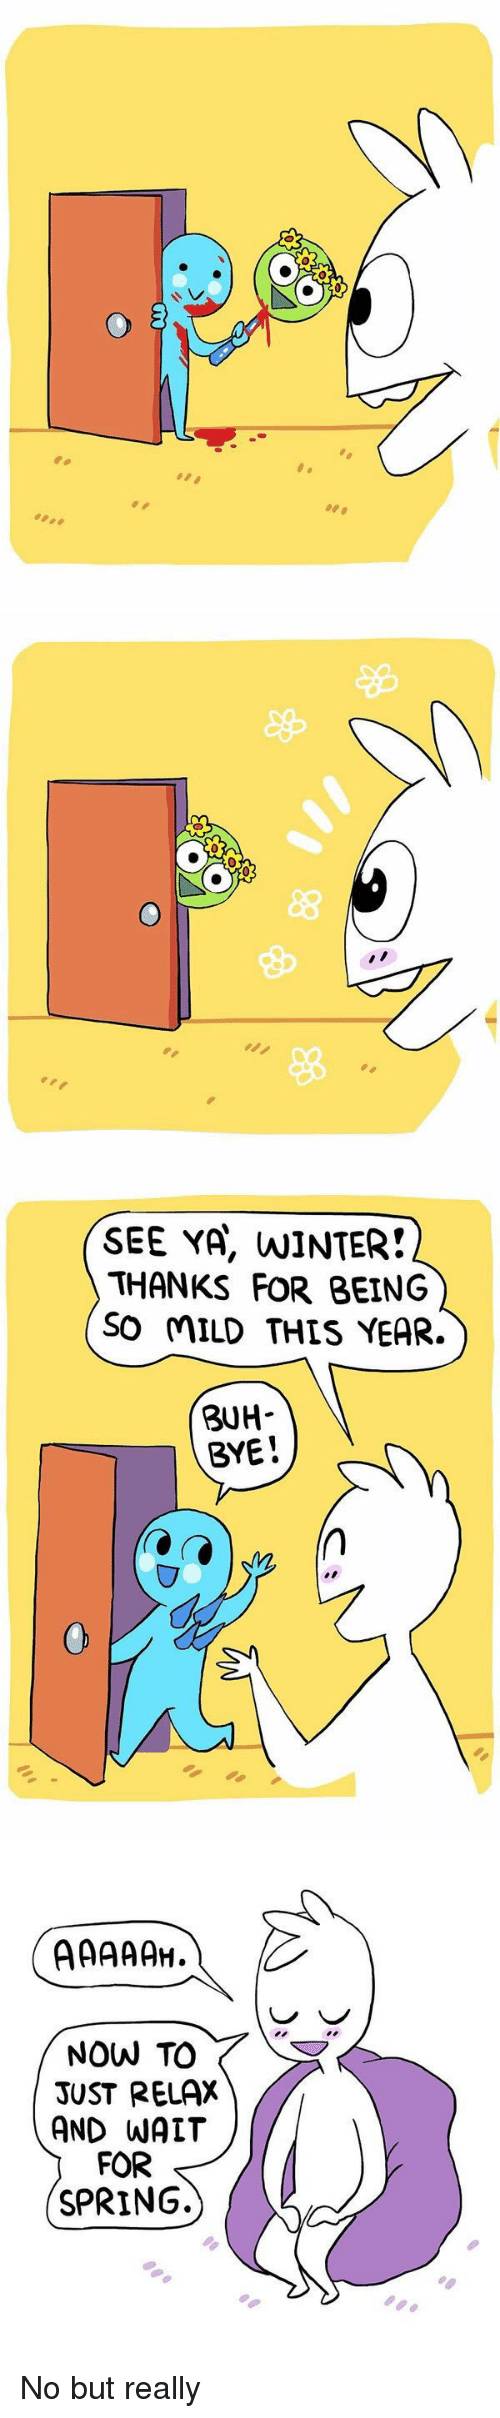 buh bye: o 3   O  //ノ   SEE YA, NINTER!  THANKS FOR BEING  SO MILD THIS YEAR.  BUH  BYE!   NOW TO  JUST RELAX  AND WATT  FOR  SPRING. No but really